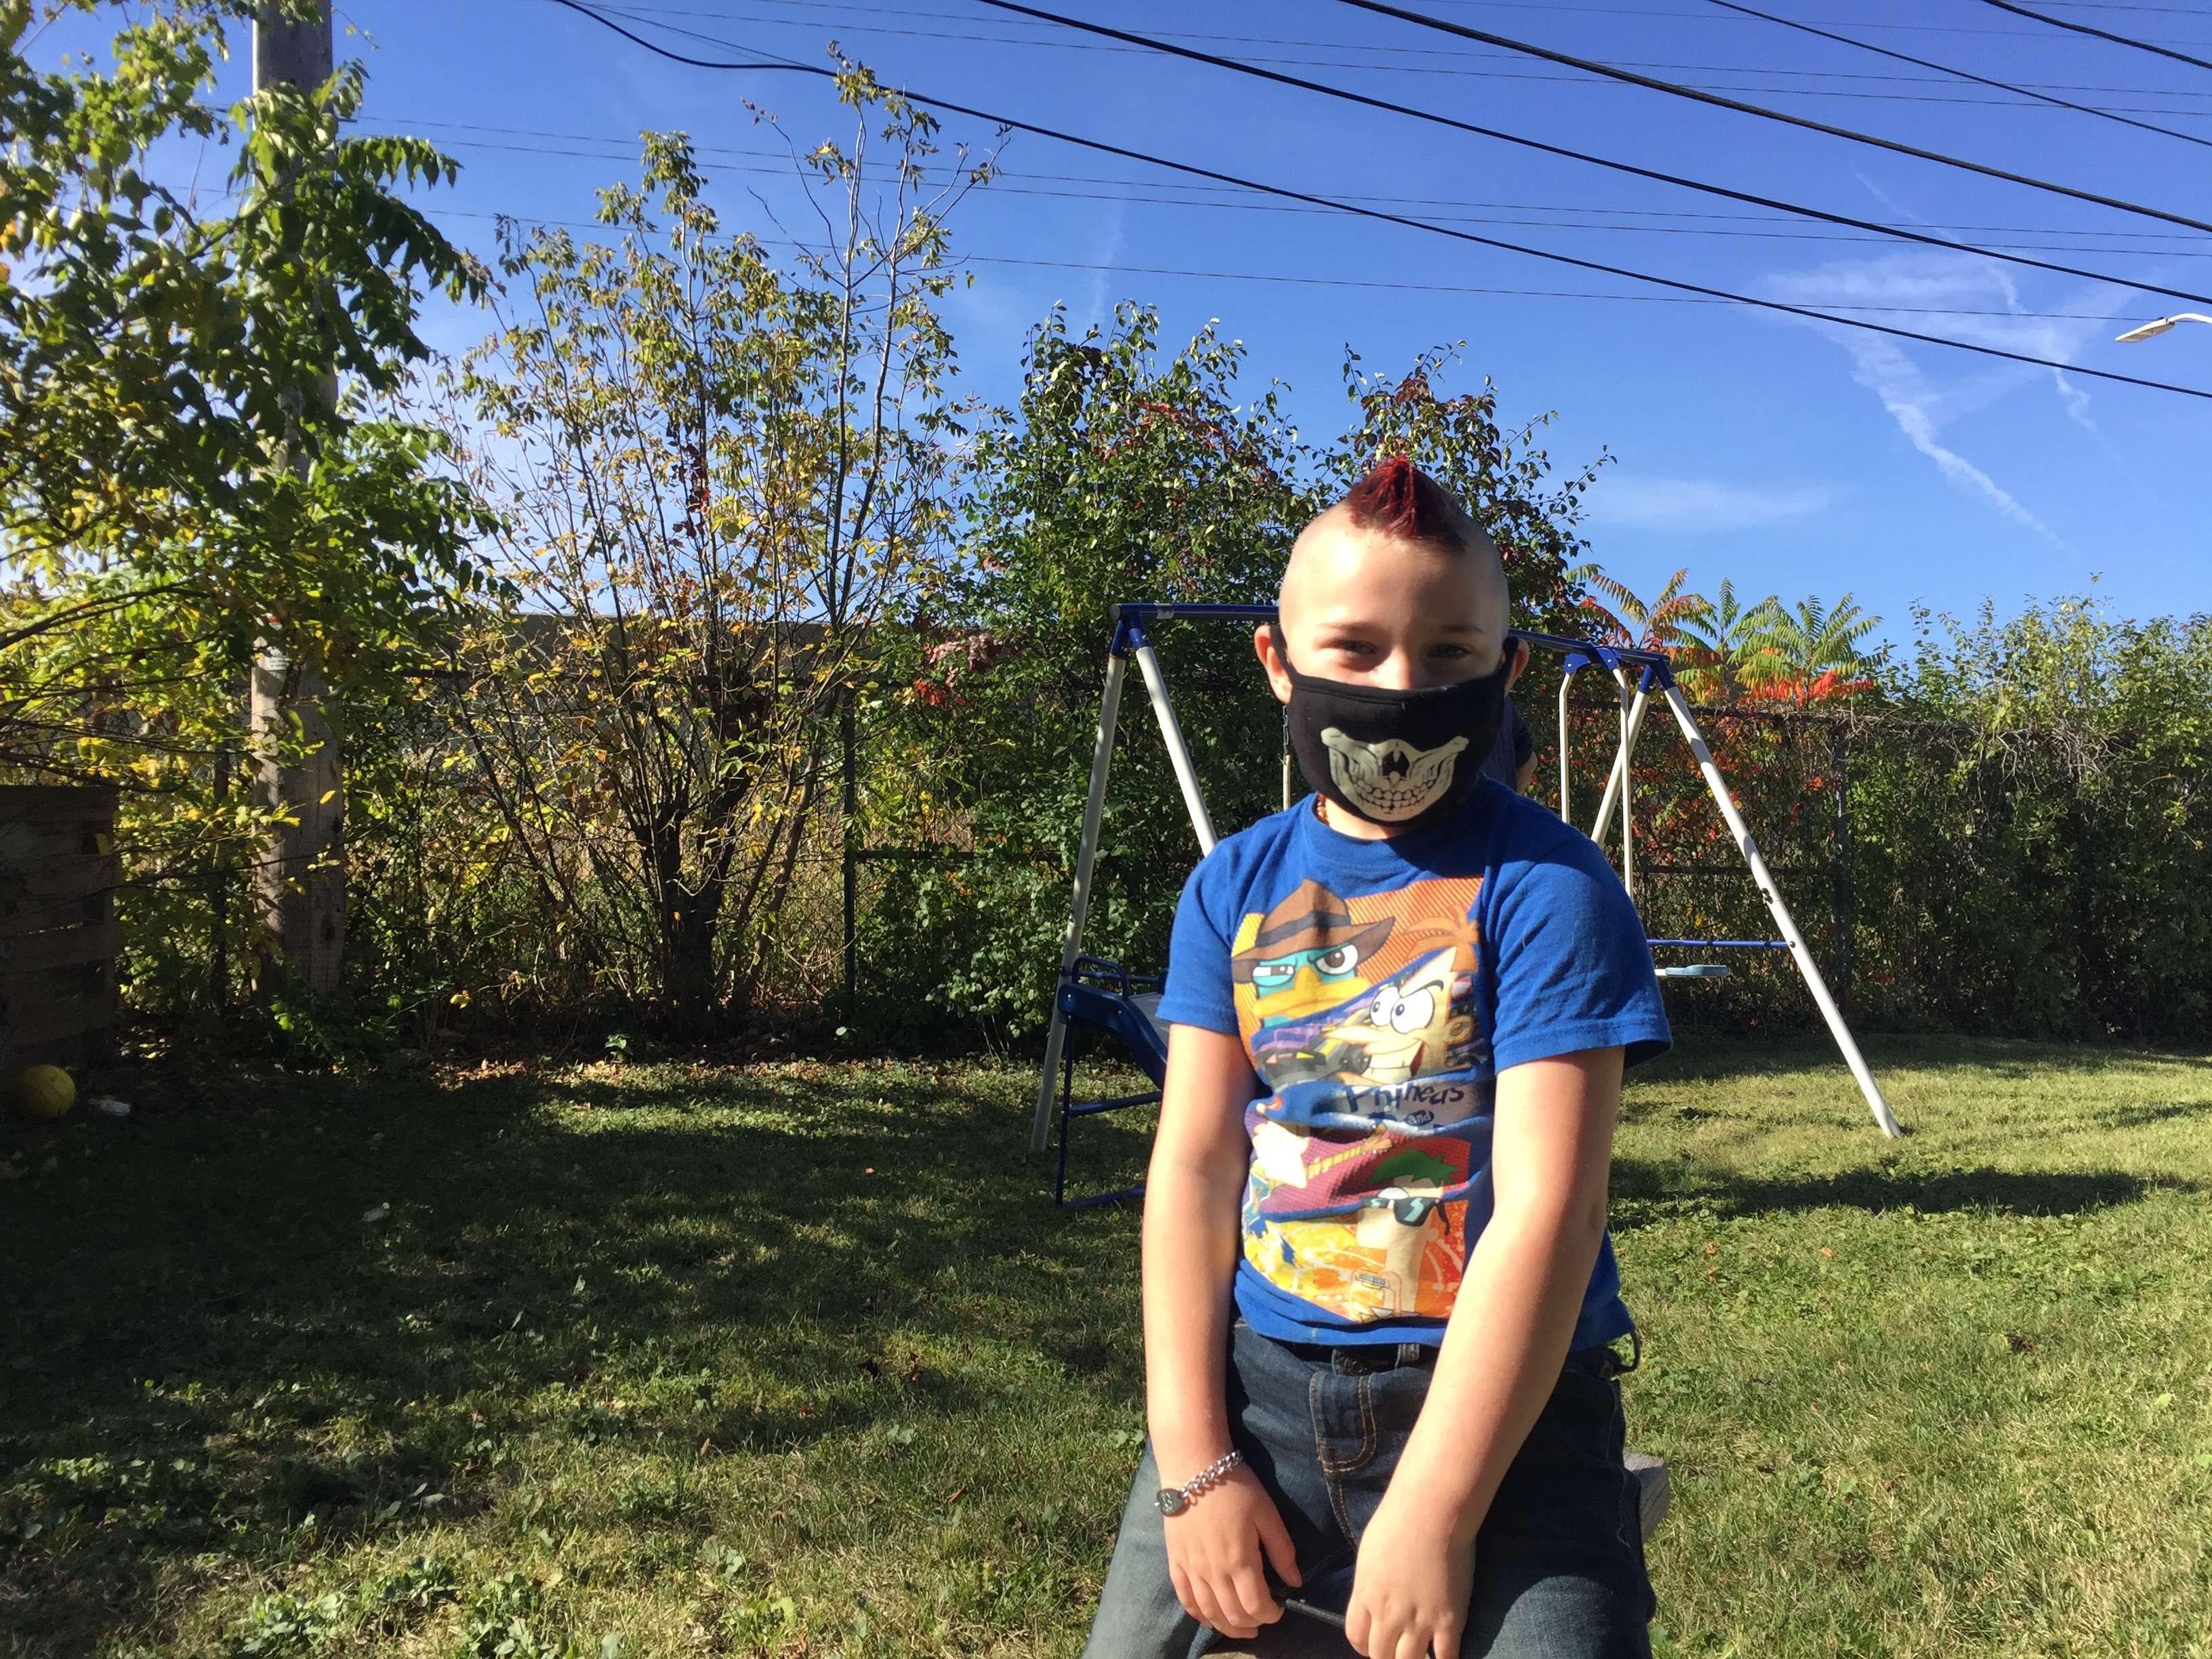 Gabriel is now home schooled and exposure outside is limited and he always covers his face. He has spent less time in the hospital after the DOT began spraying down construction dust more than usual according to the American Lung Association. by